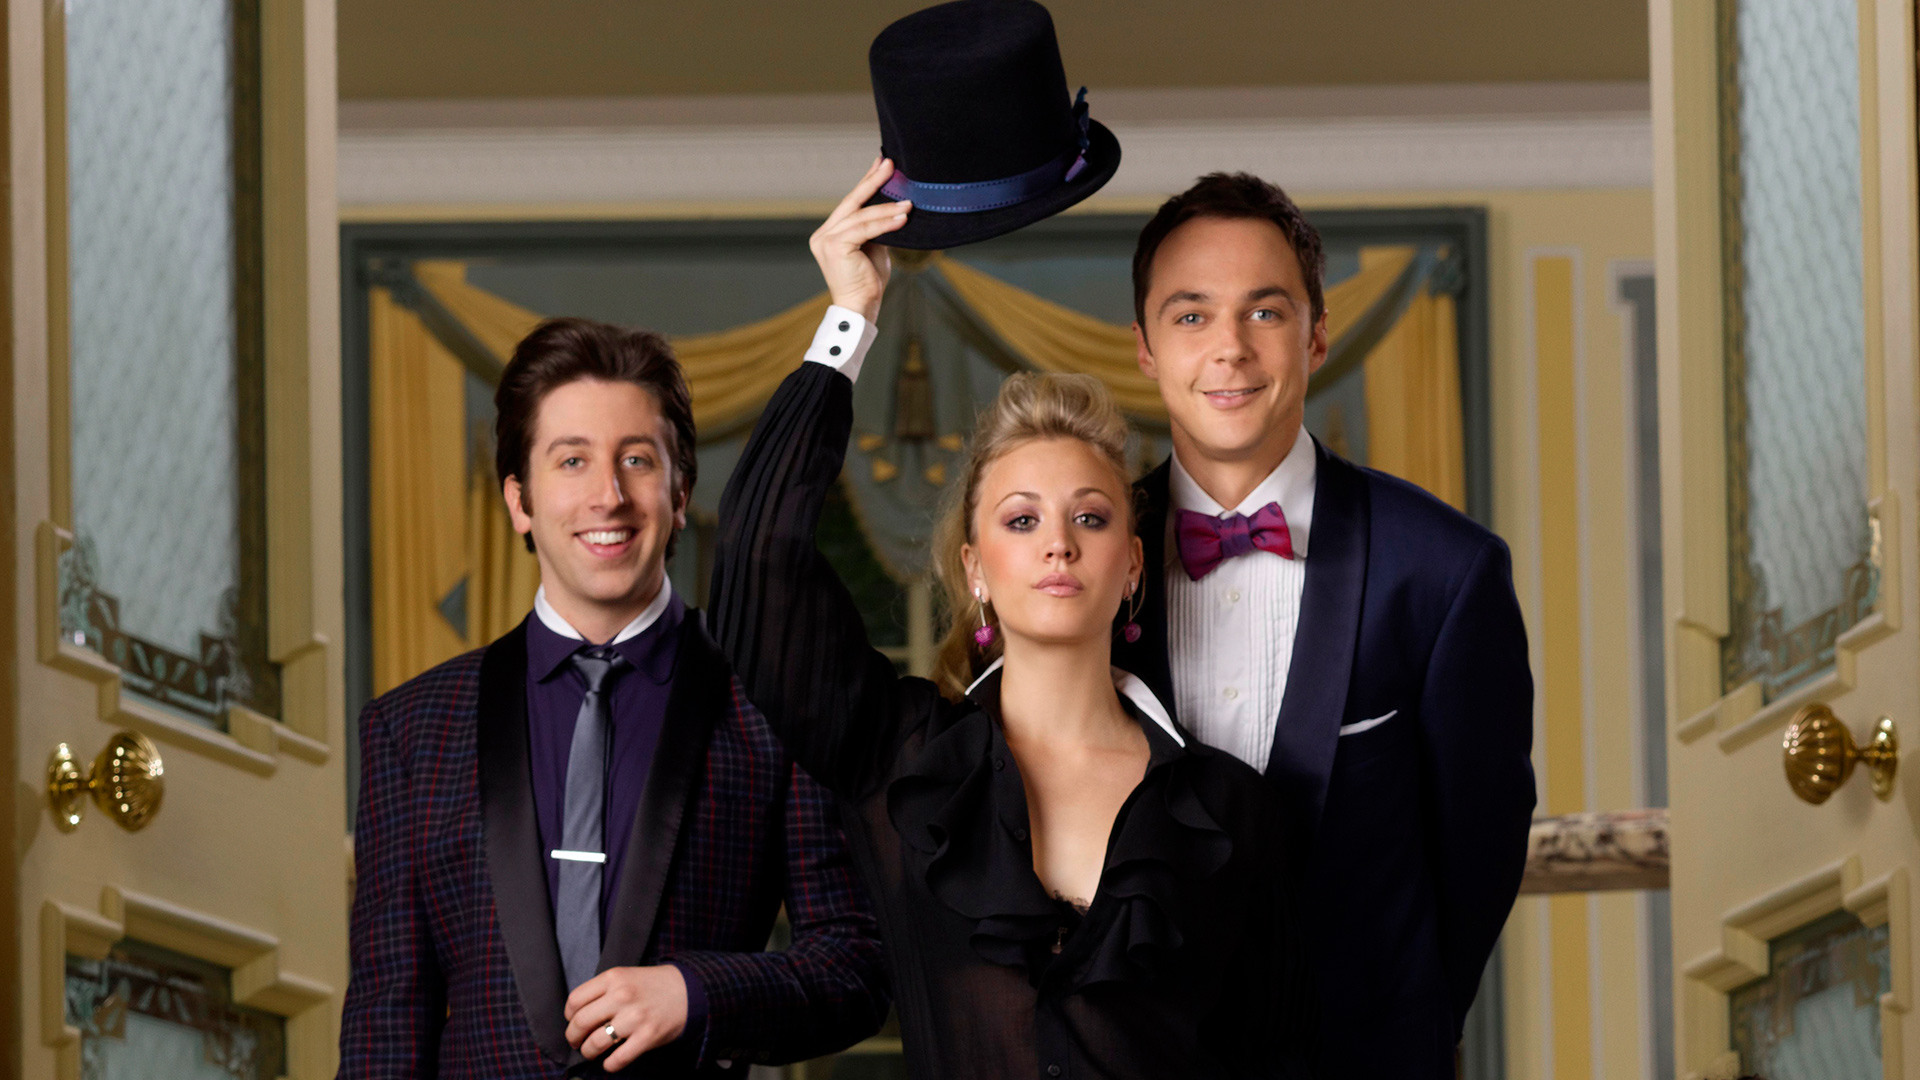 Hats off to these The Big Bang Theory stars